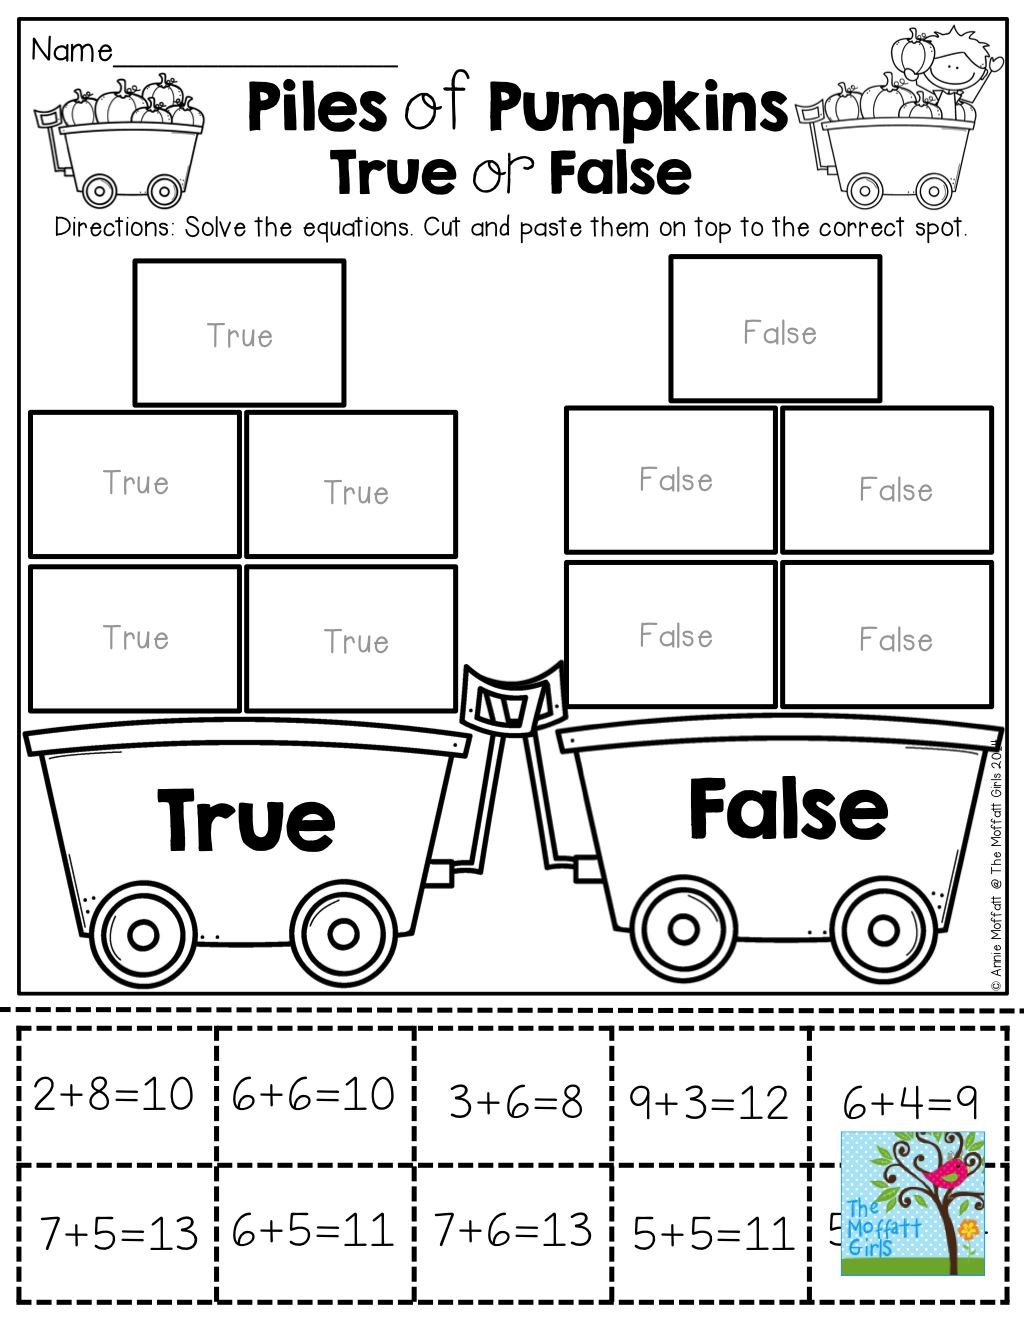 True or False? Cut and paste the number sentences to the